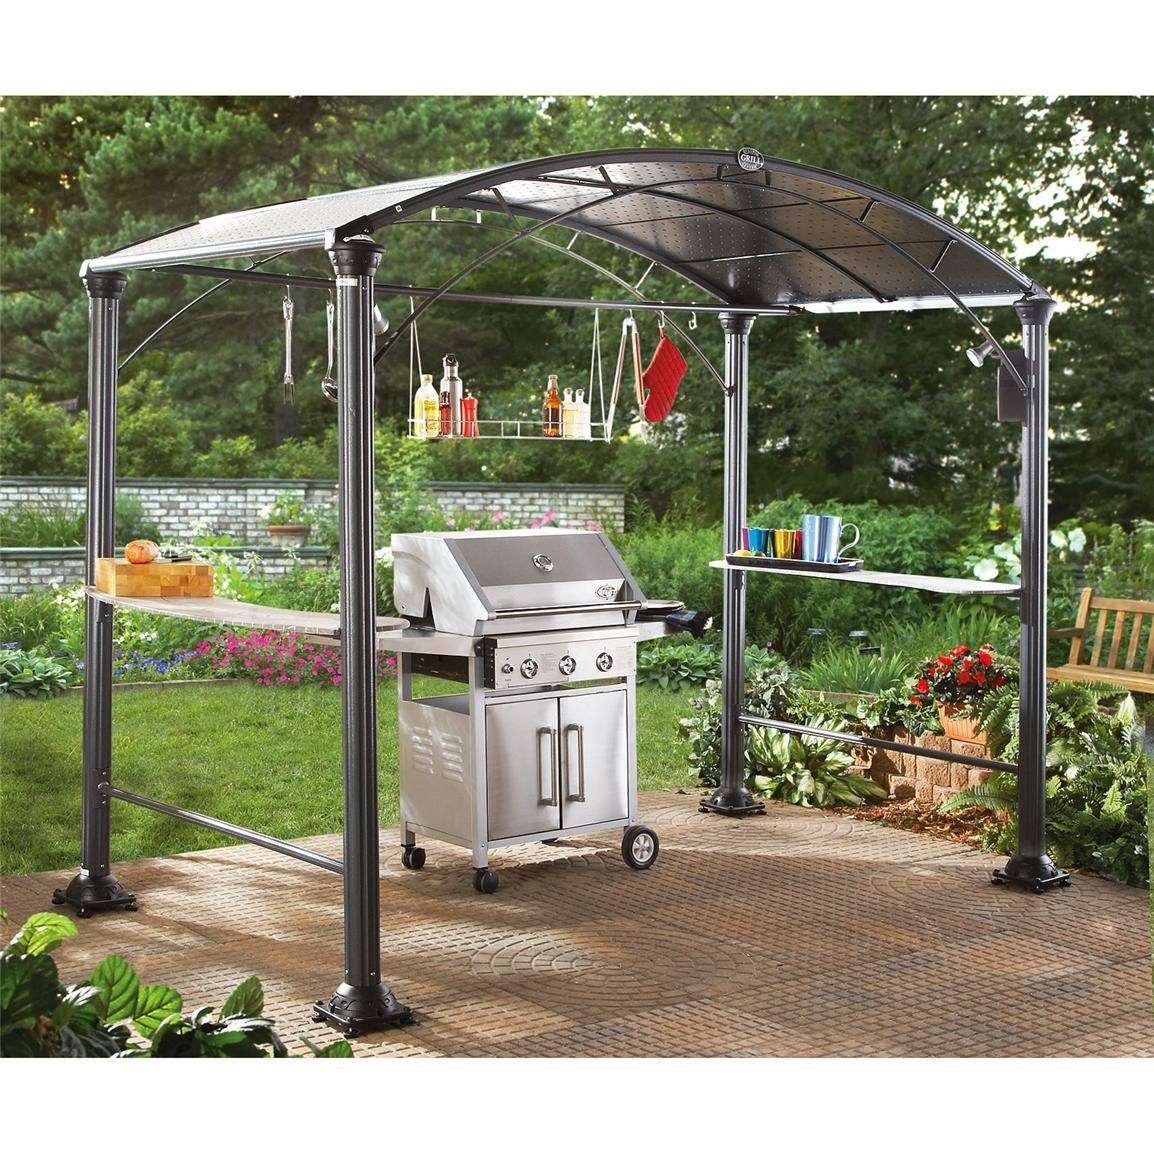 Delicieux Eclipse Backyard Grill Center, Black   Gazebos At Sportsmanu0027s Guide